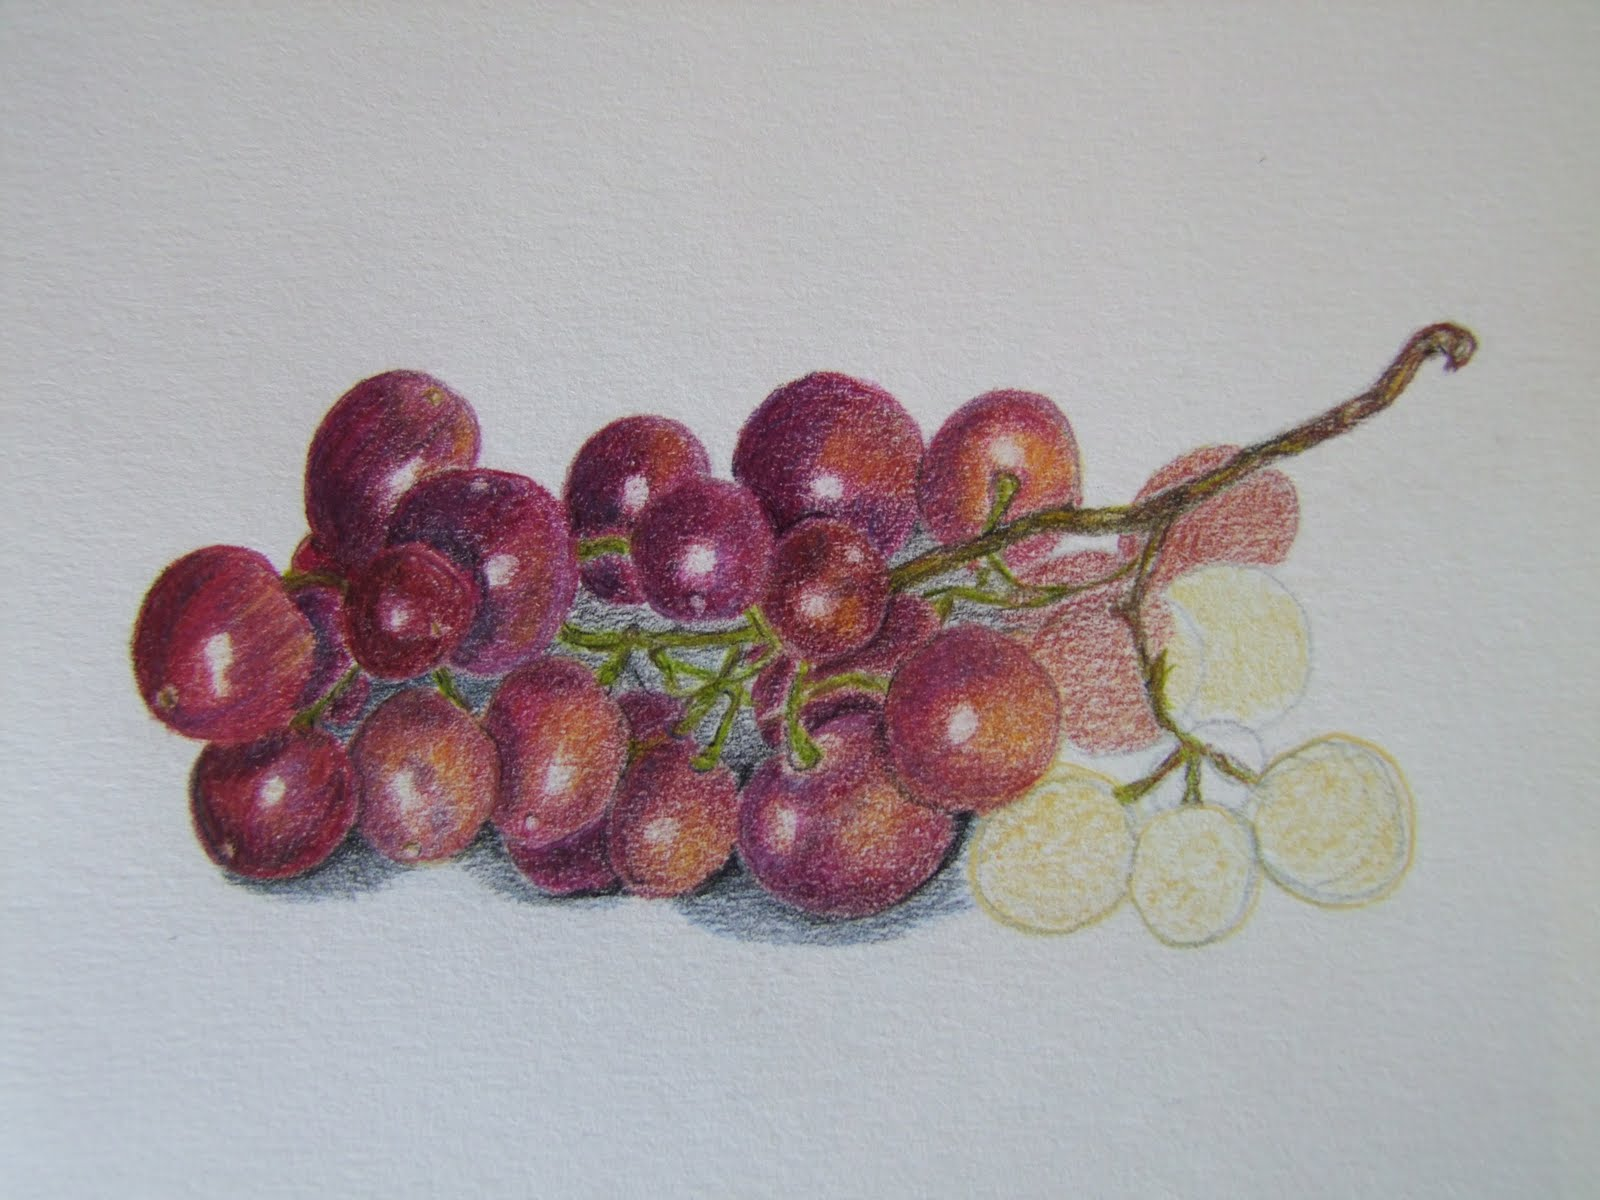 Drawn grapes realistic Few of work on second